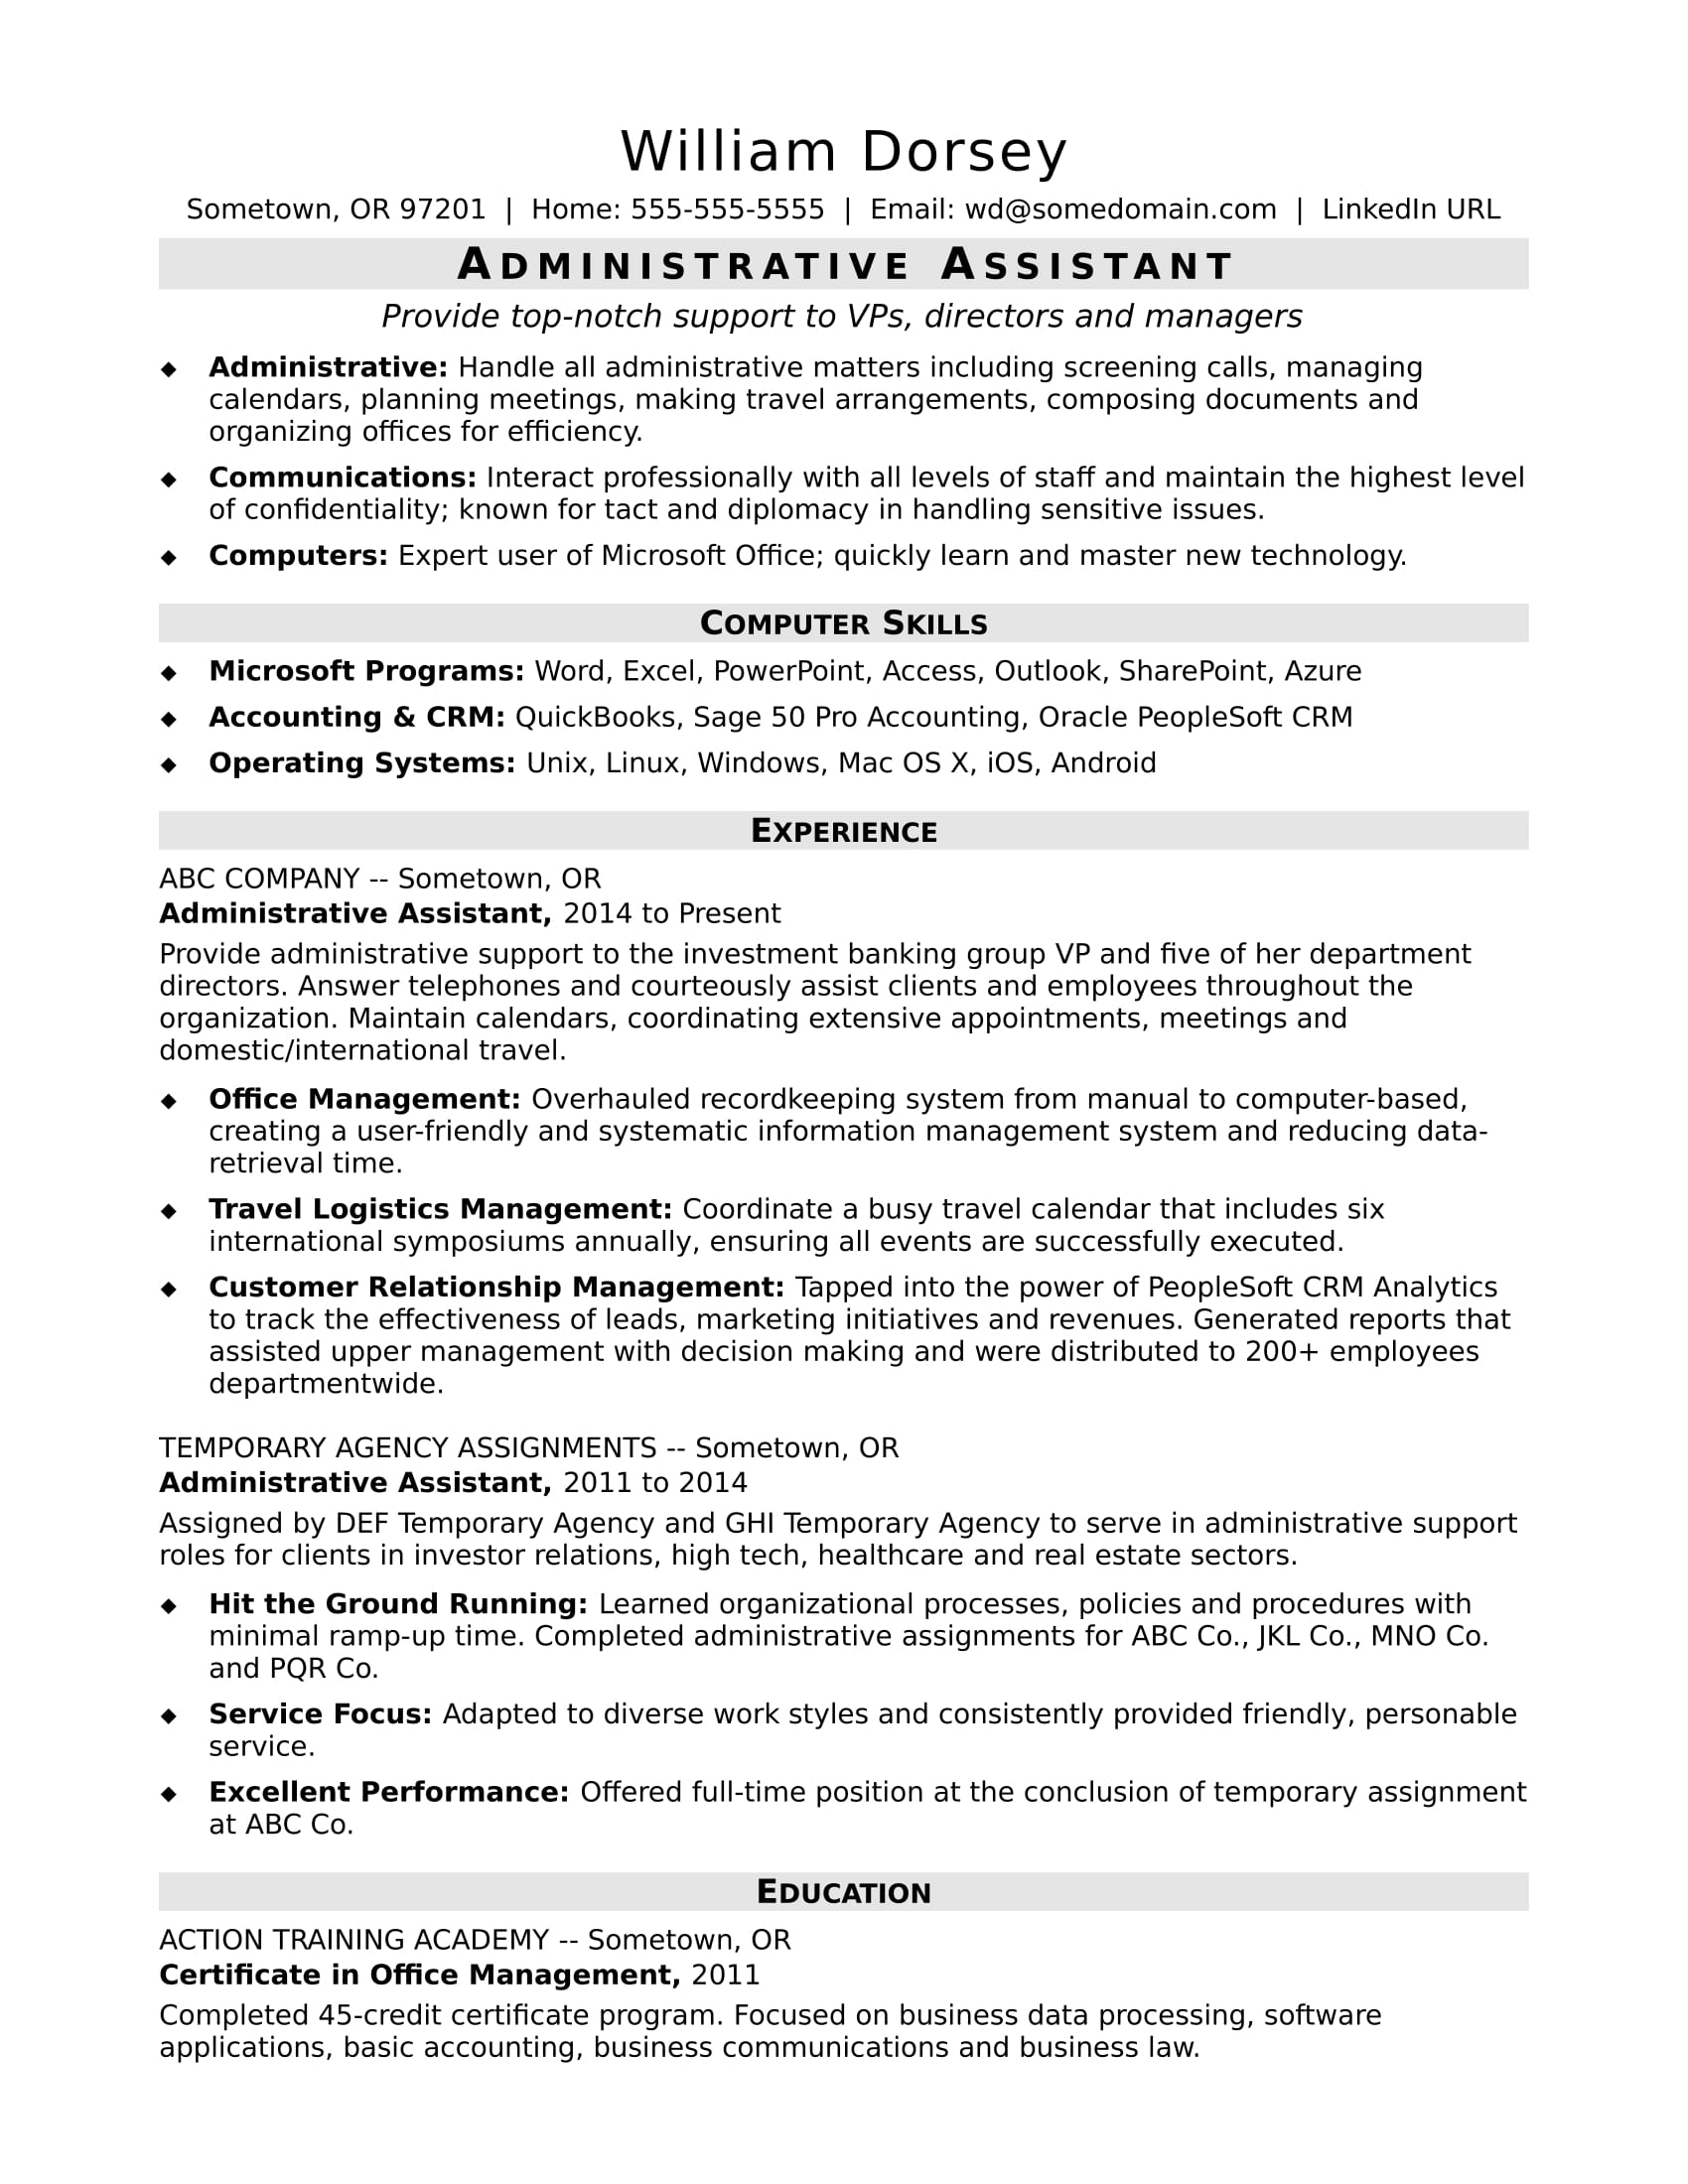 Midlevel Administrative Assistant Resume Sample Monster